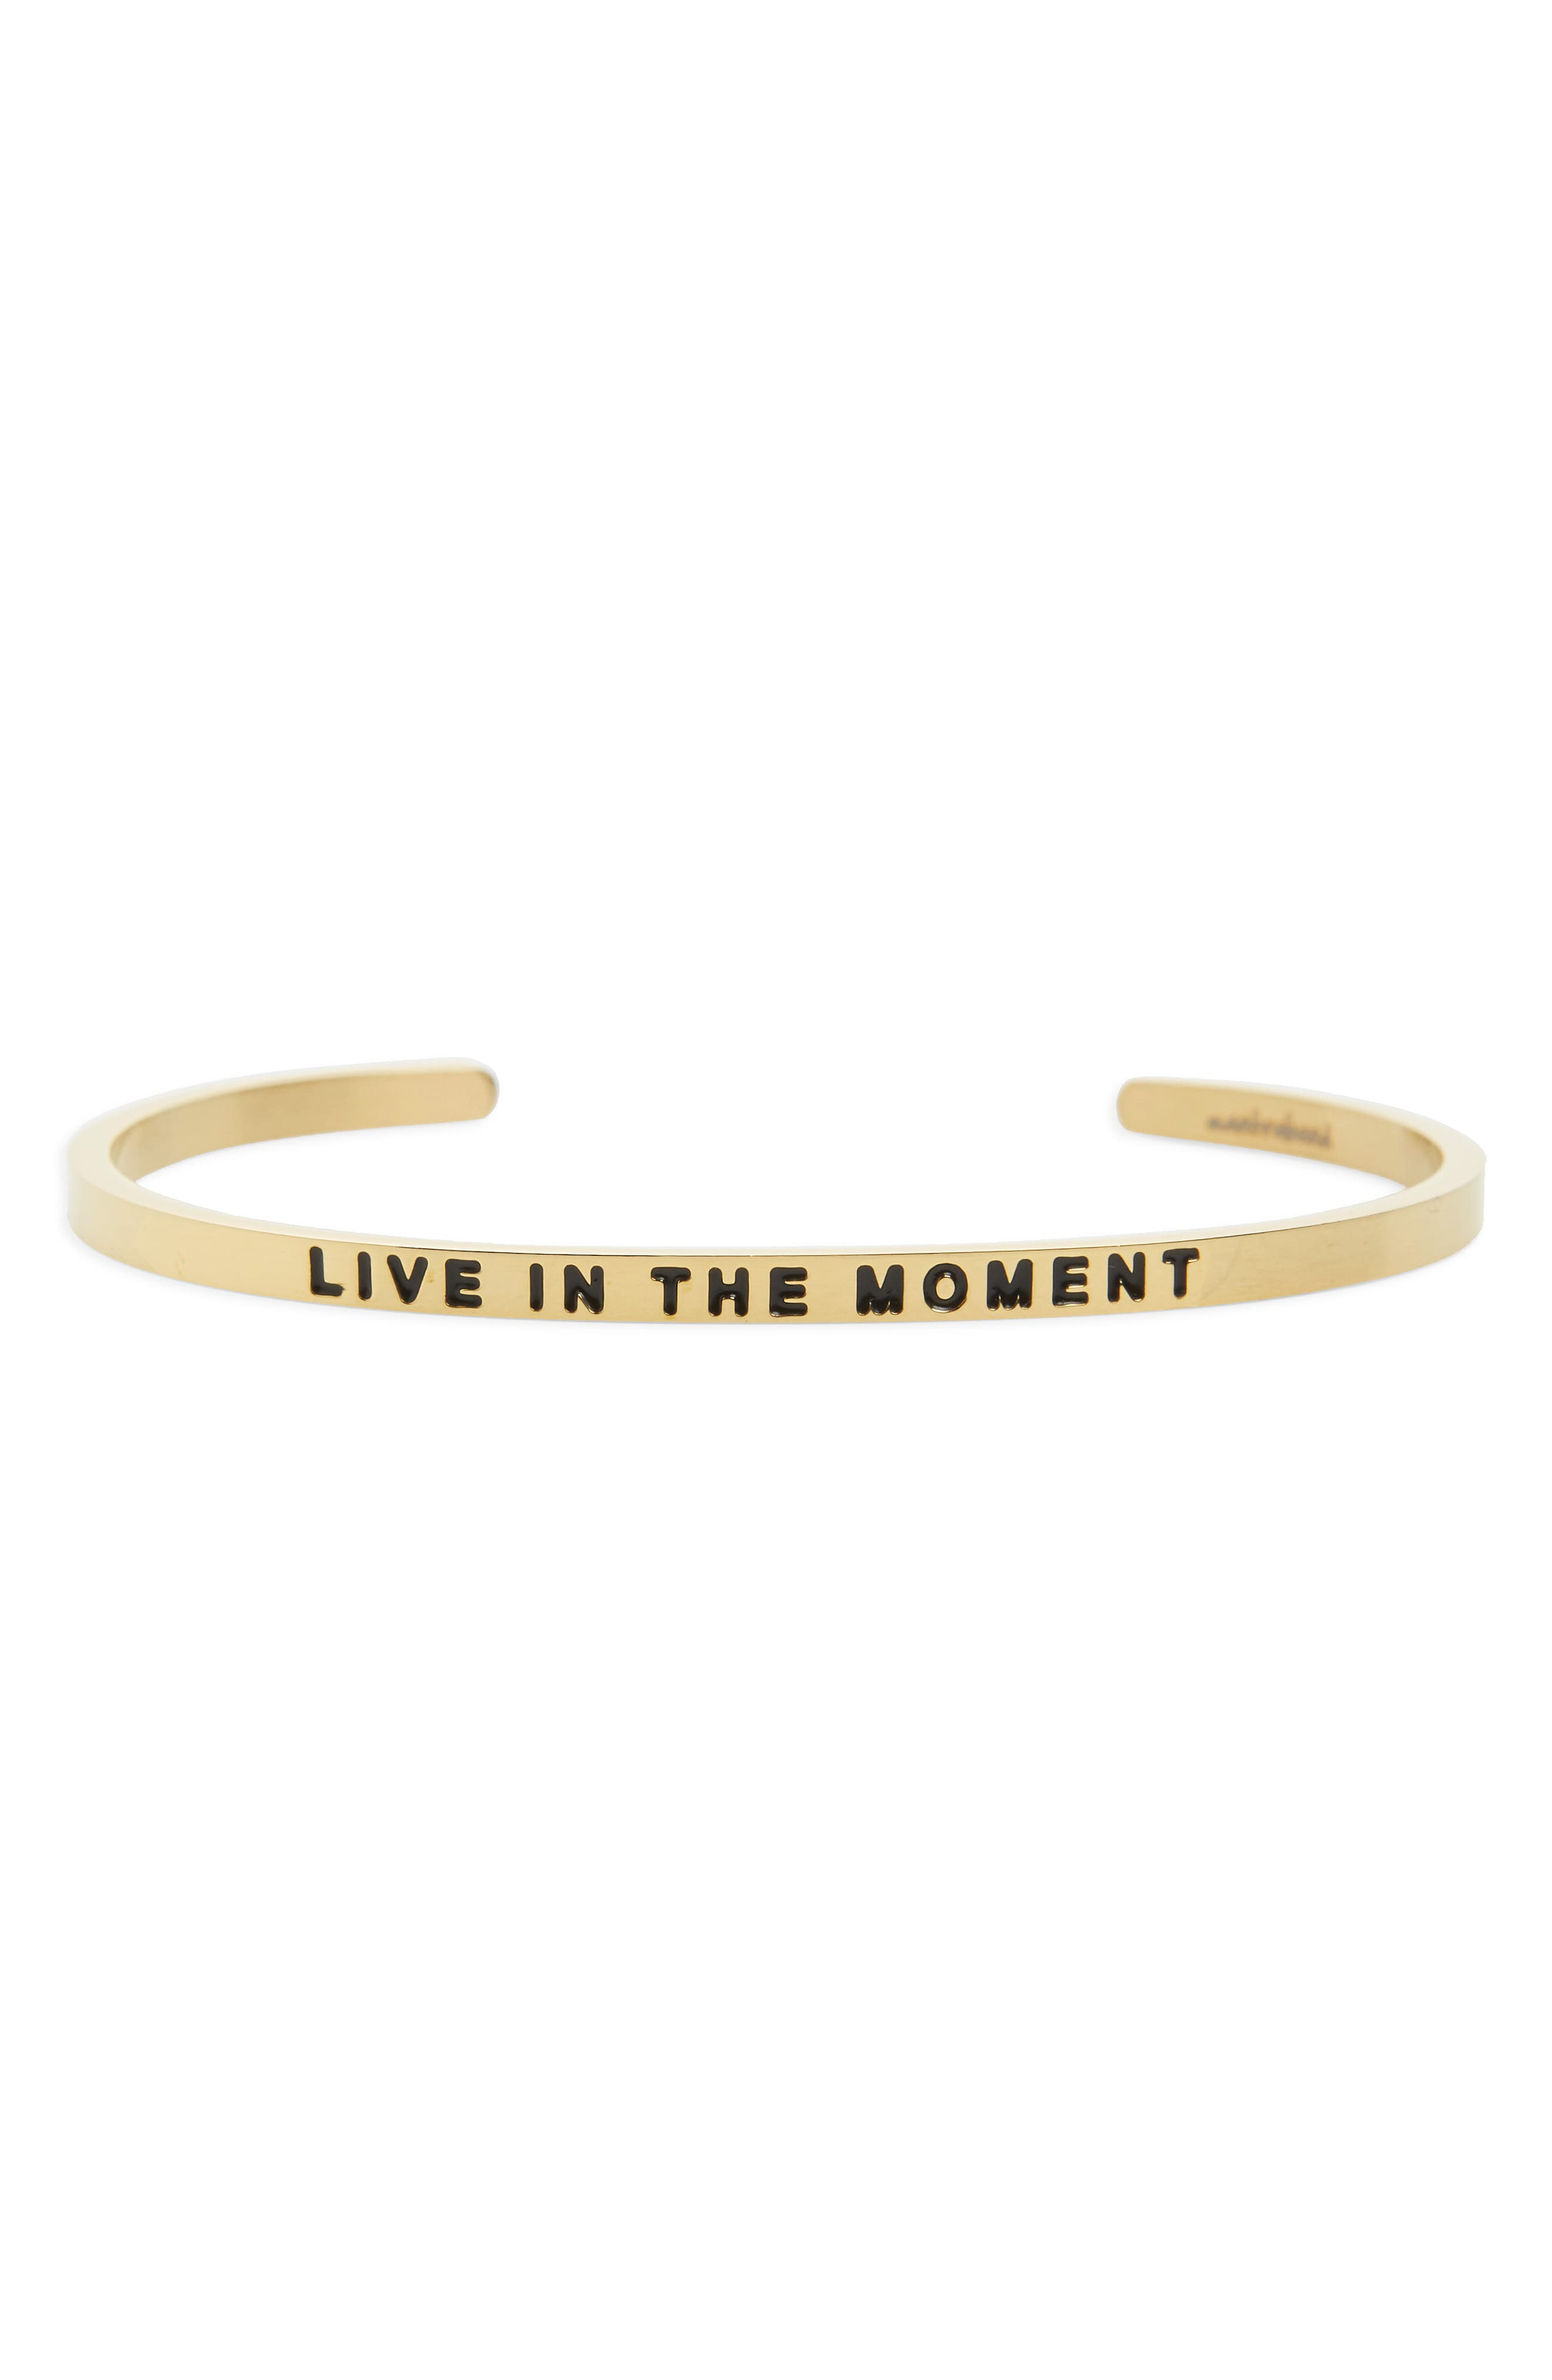 MantraBand Live in the Moment Engraved Cuff